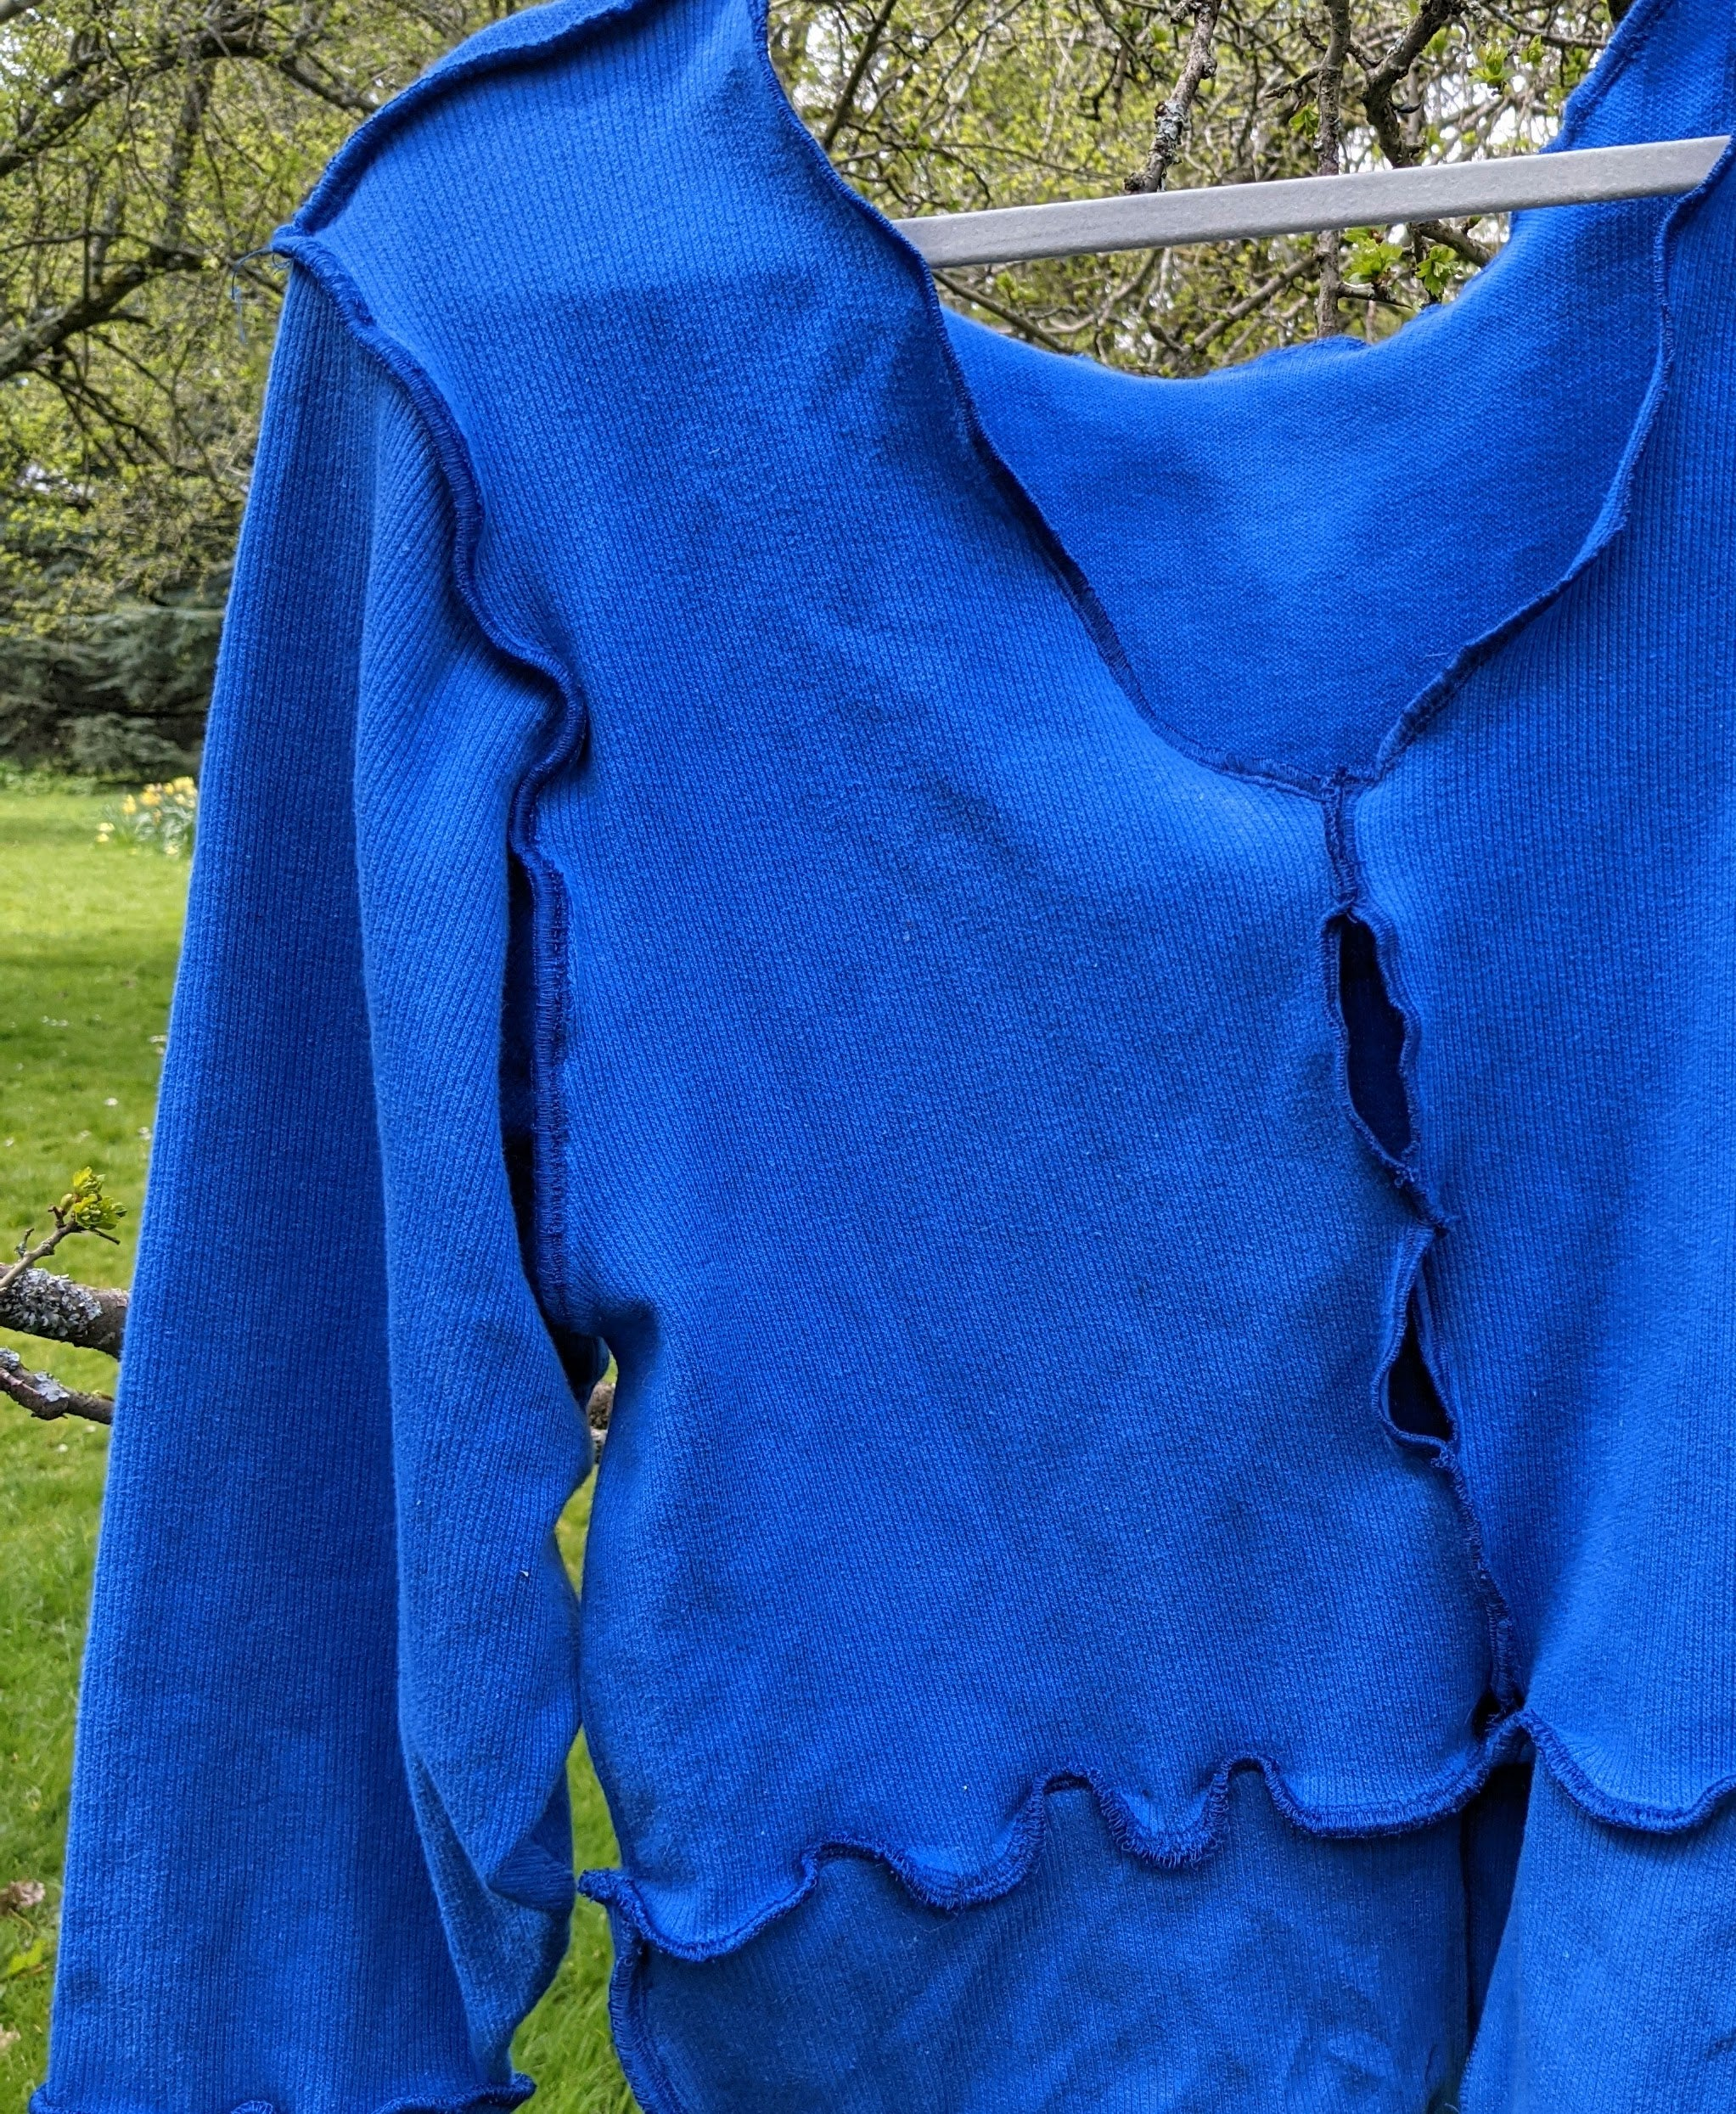 Blue patchwork sweatshirt - Sizes 8-14 - Wain's Worldwide